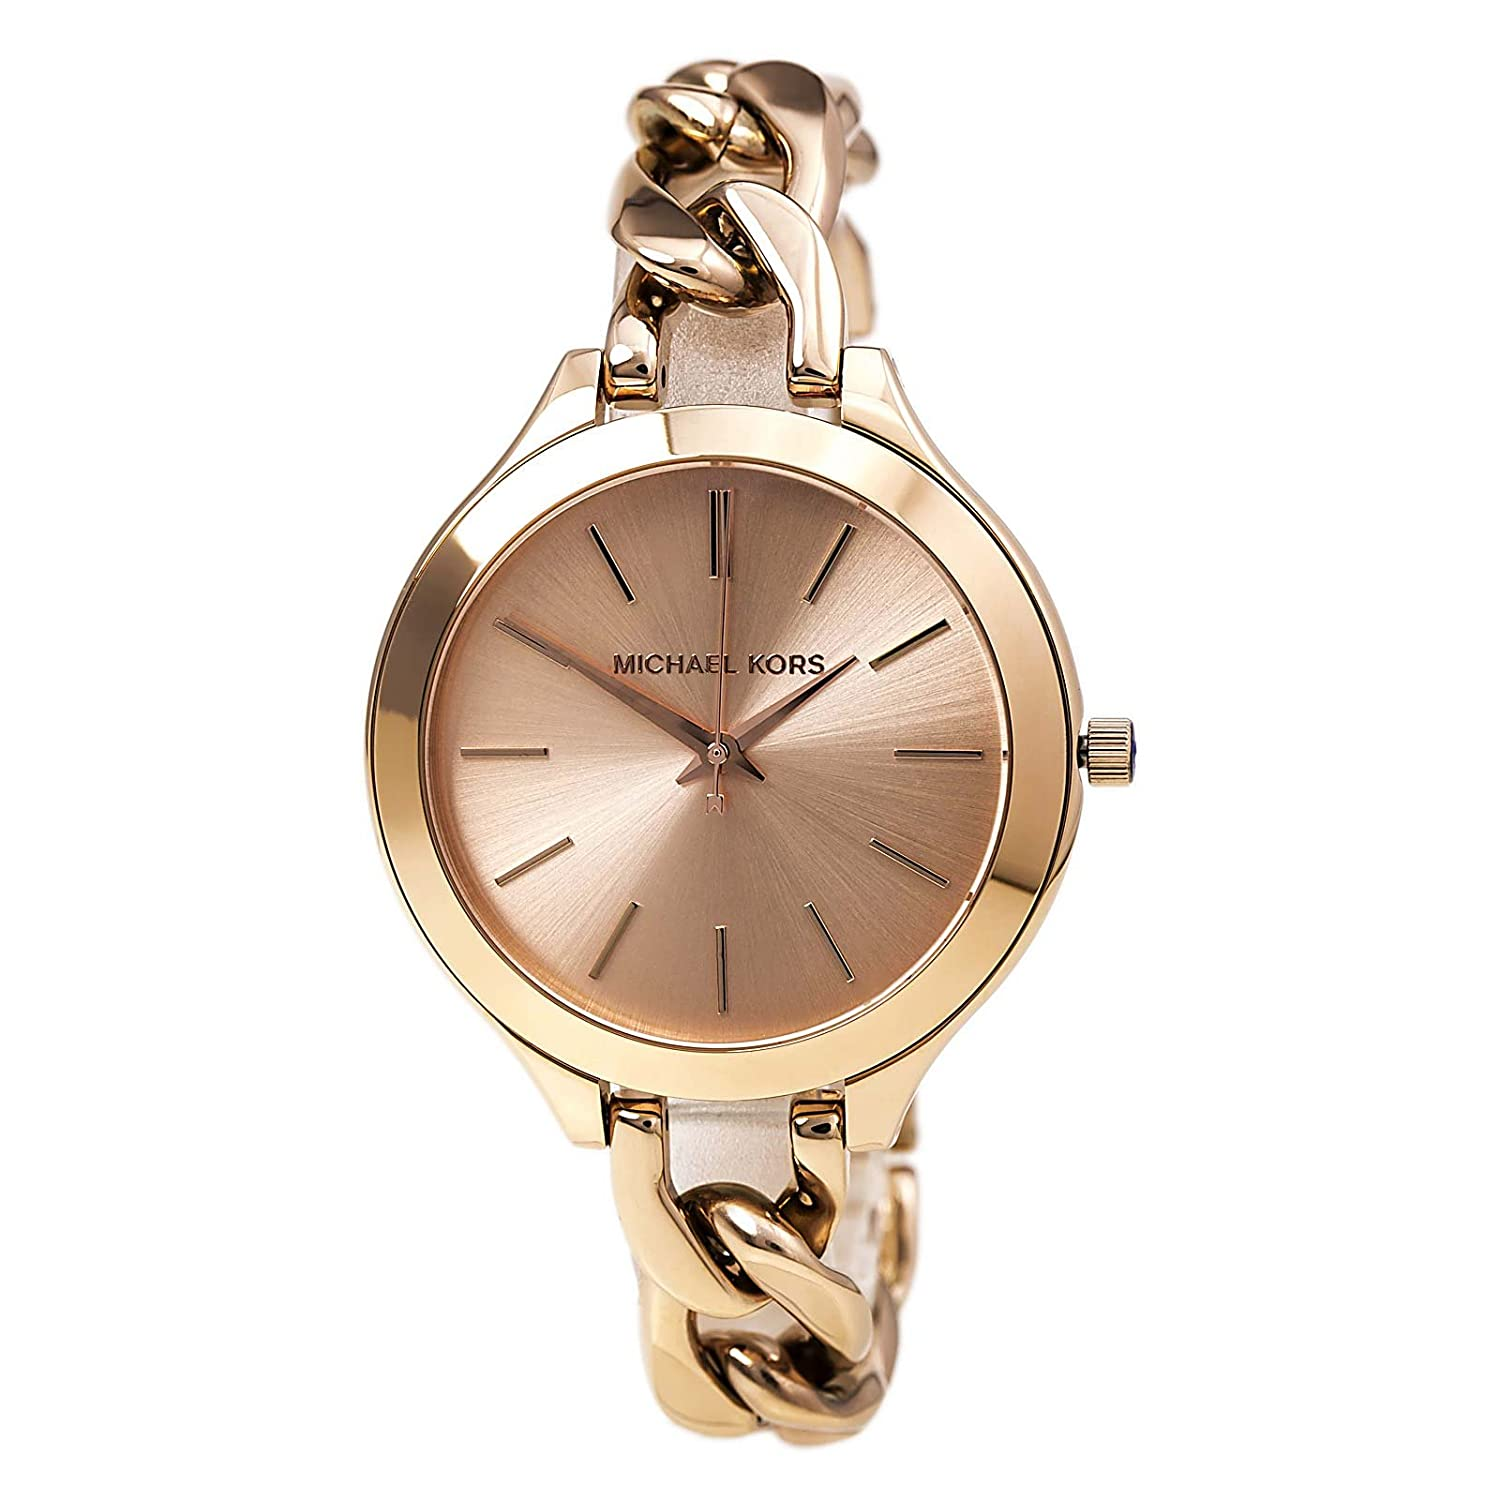 3a8937c34c56 Amazon.com  Michael Kors Women s MK3223 Slim Runway Rose Gold-Tone  Stainless Steel Bracelet Watch  Michael Kors  Watches